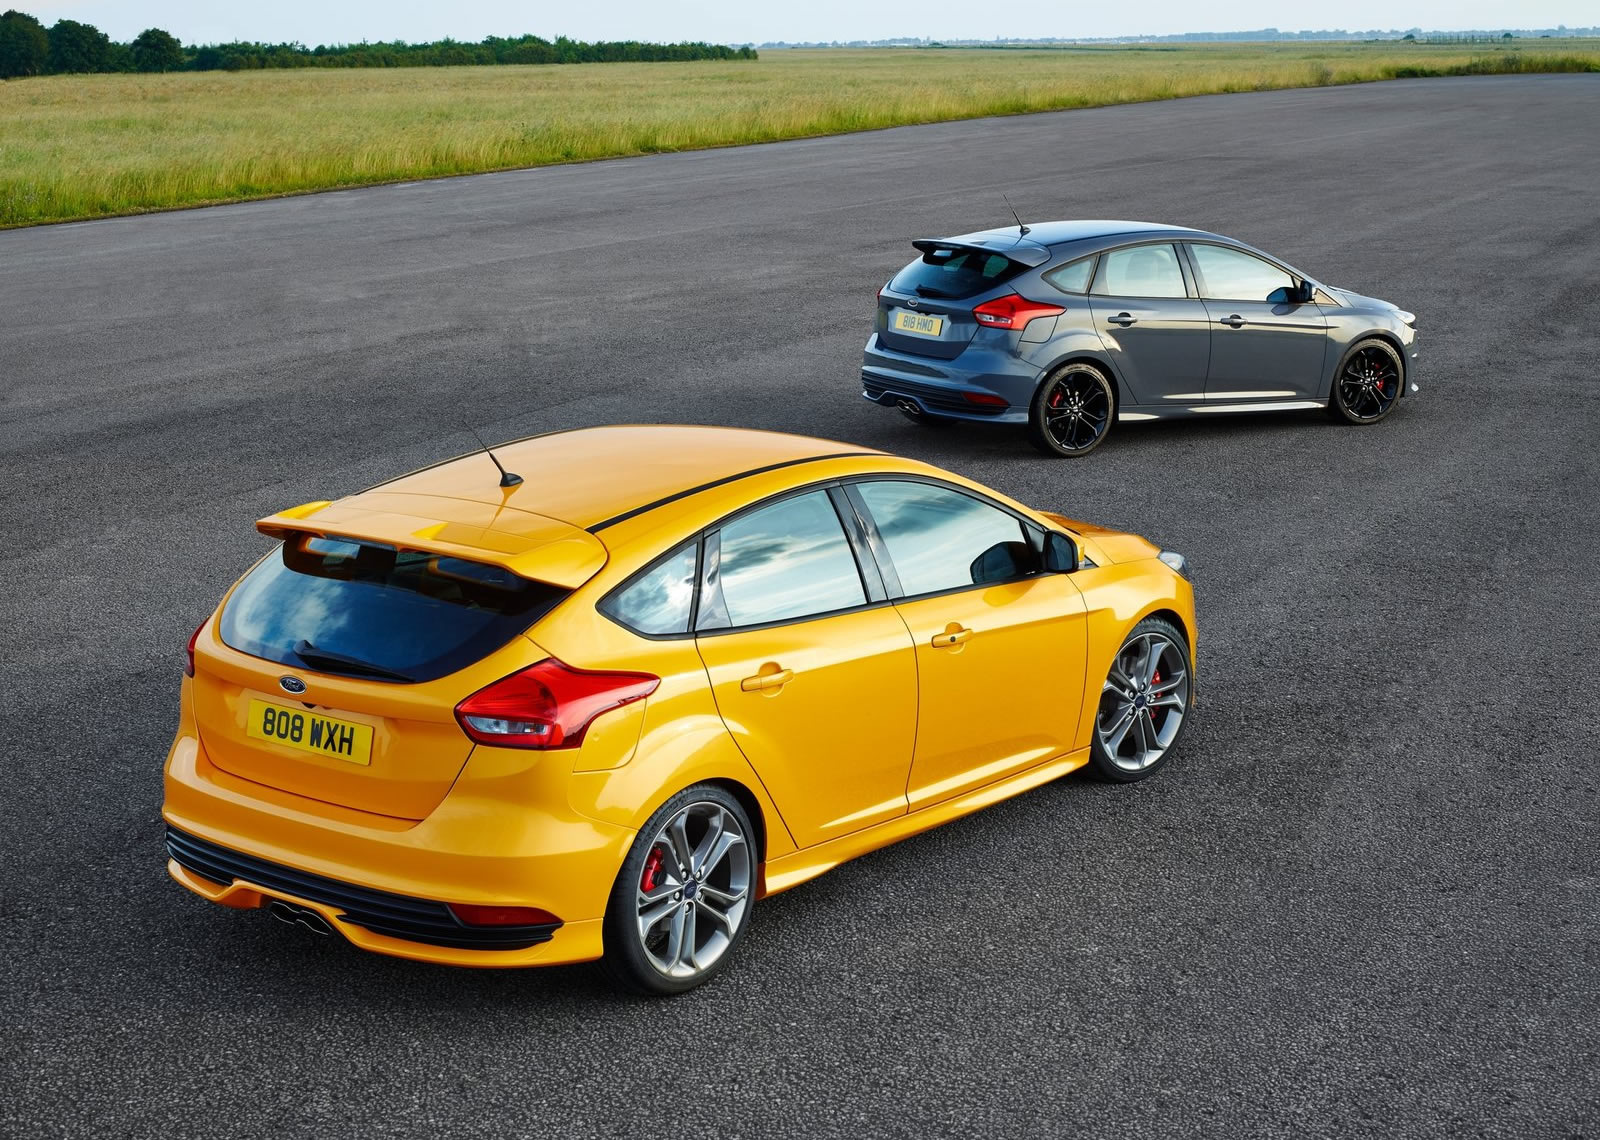 2015 Ford Focus St Rear Photo Tangerine Scream Color